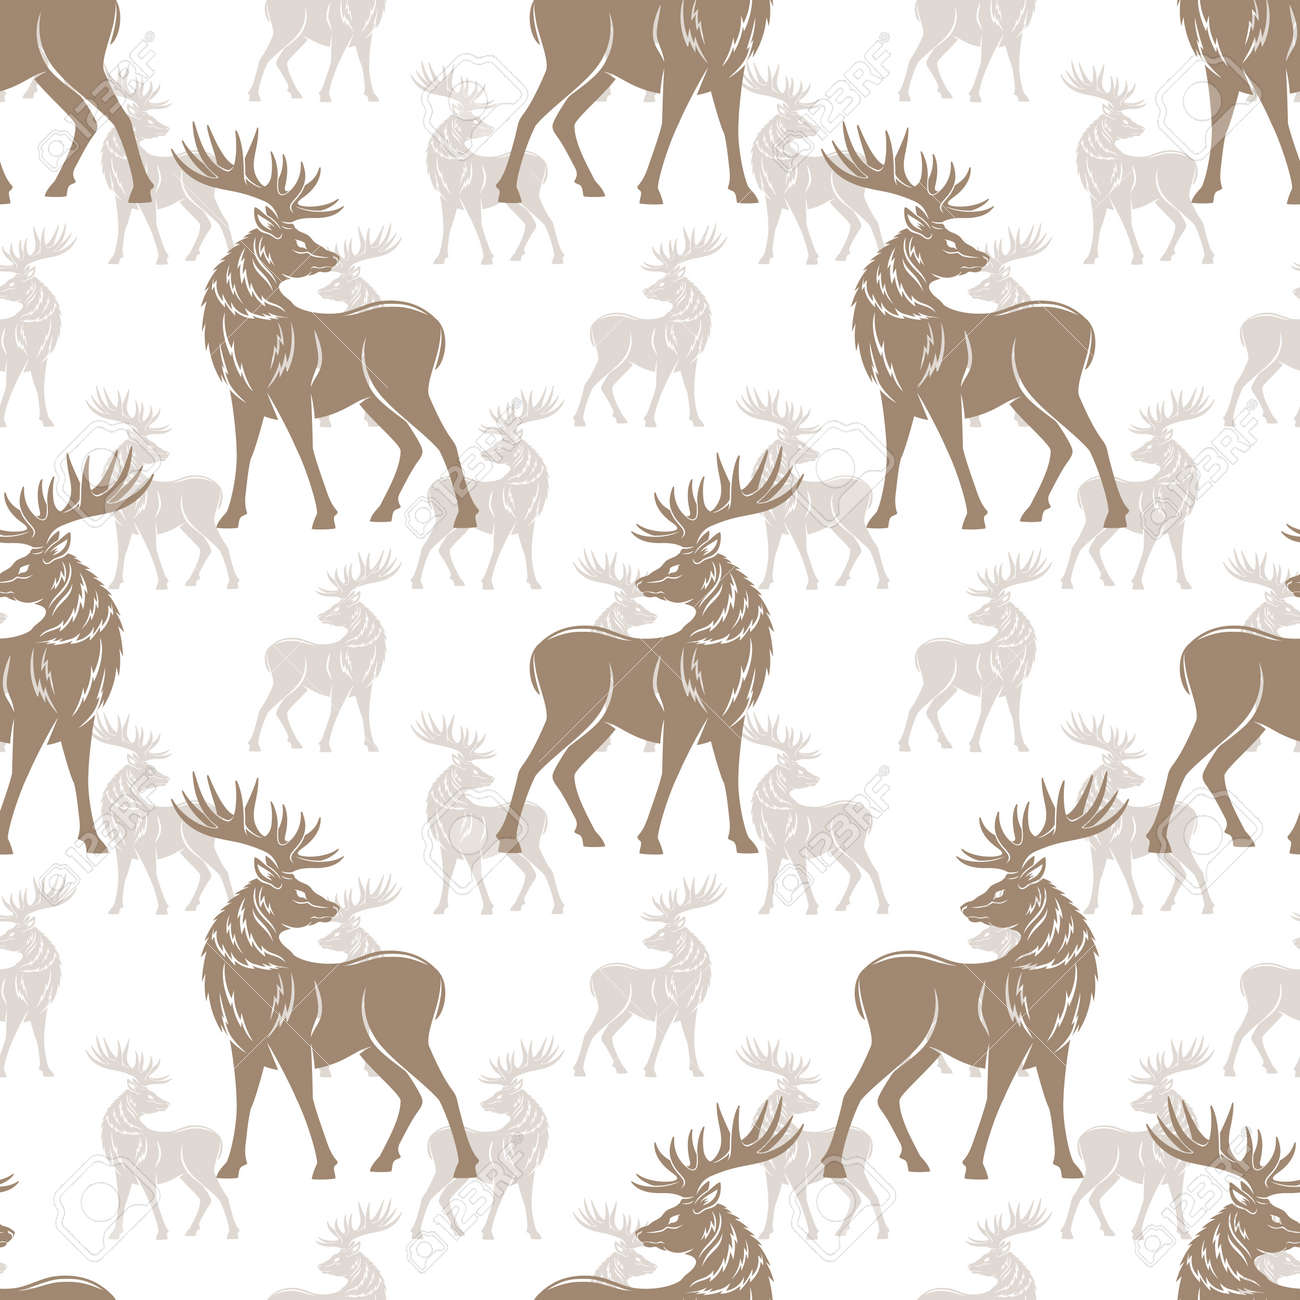 Seamless pattern with deer on white background. - 168969182